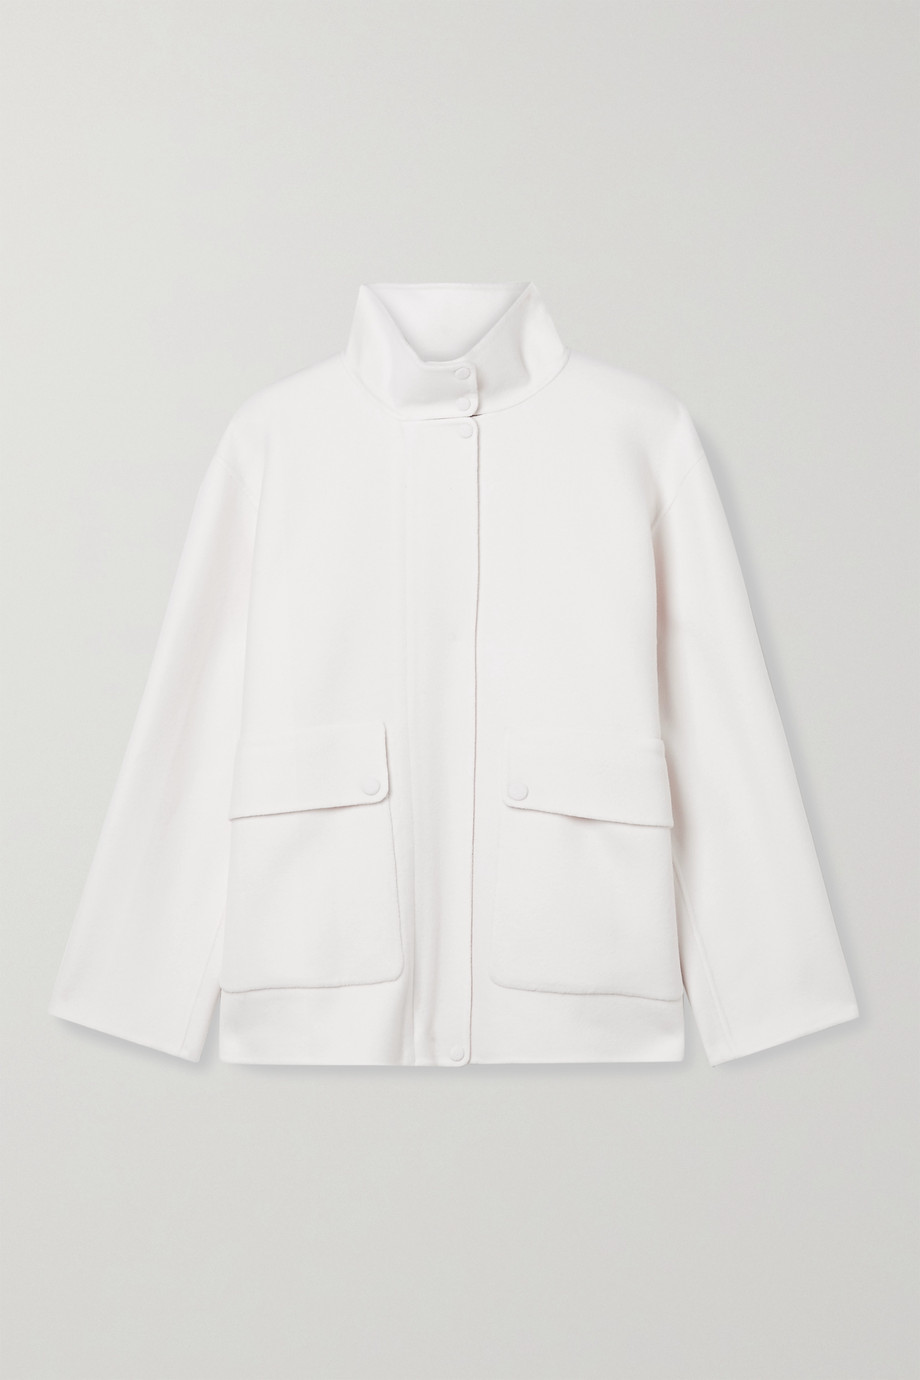 THEORY Wool and cashmere-blend jacket